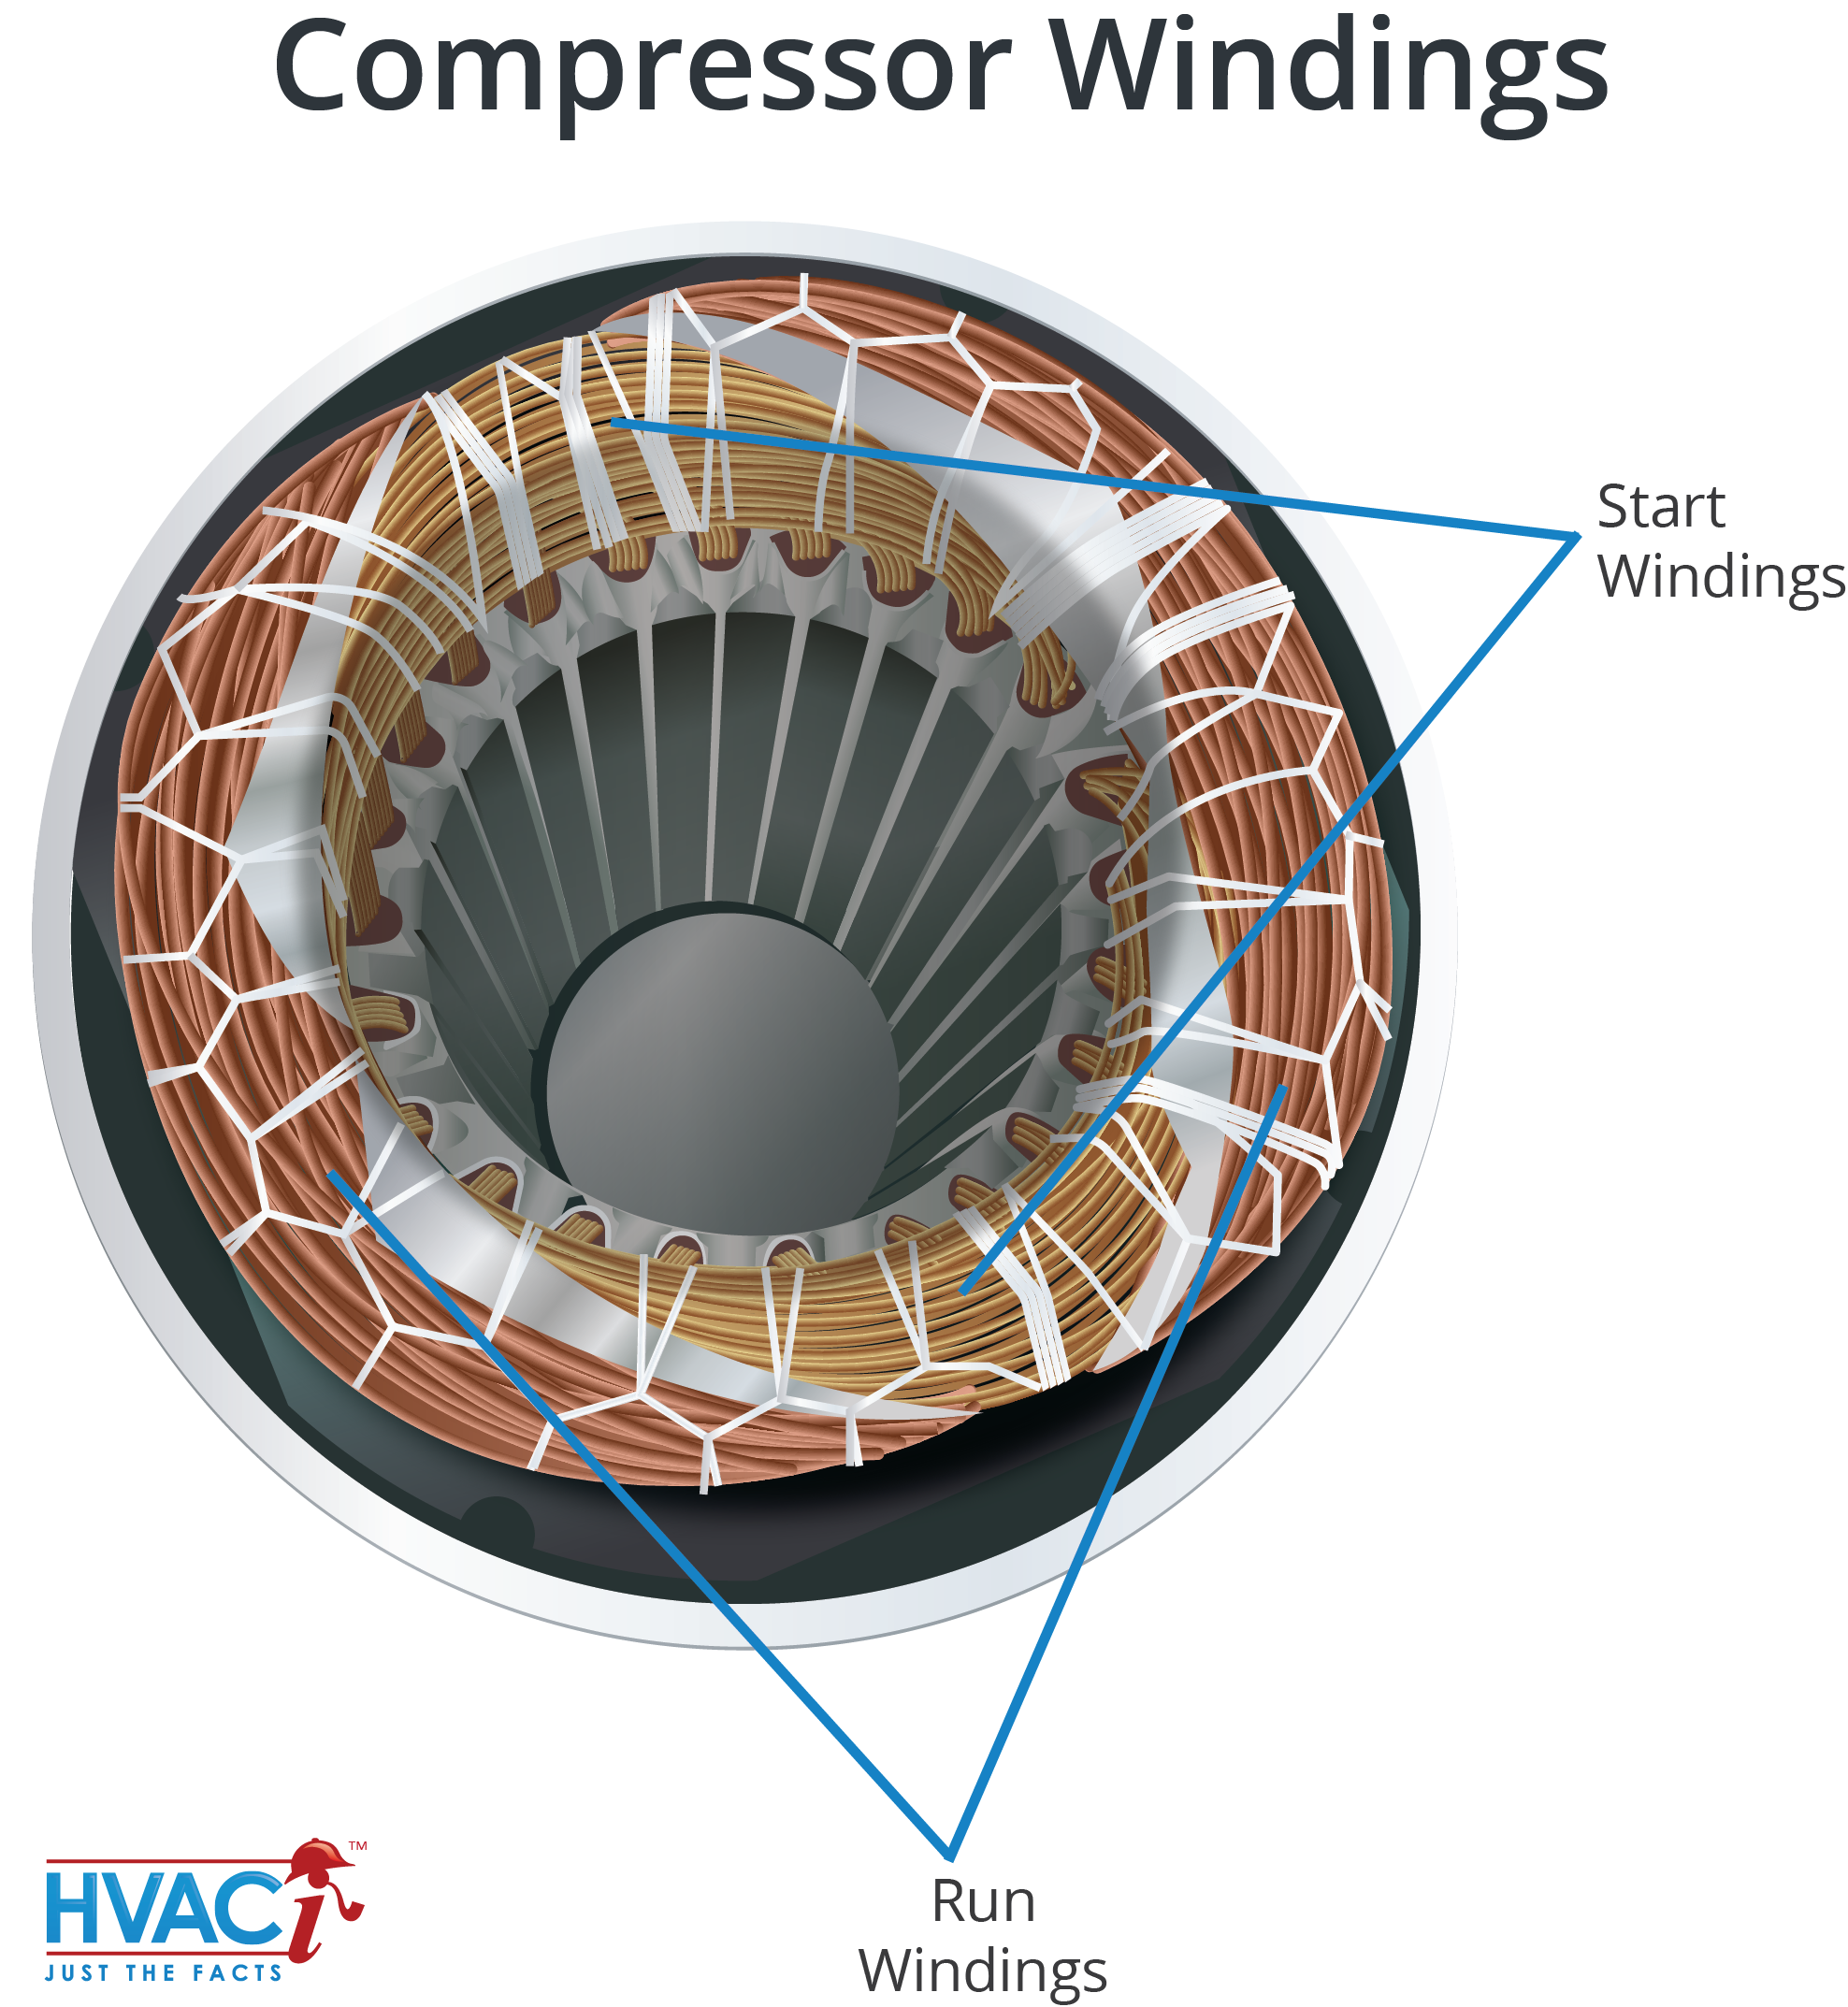 HVAC Compressor Damage: Lightning or Wear & Tear - HVACi